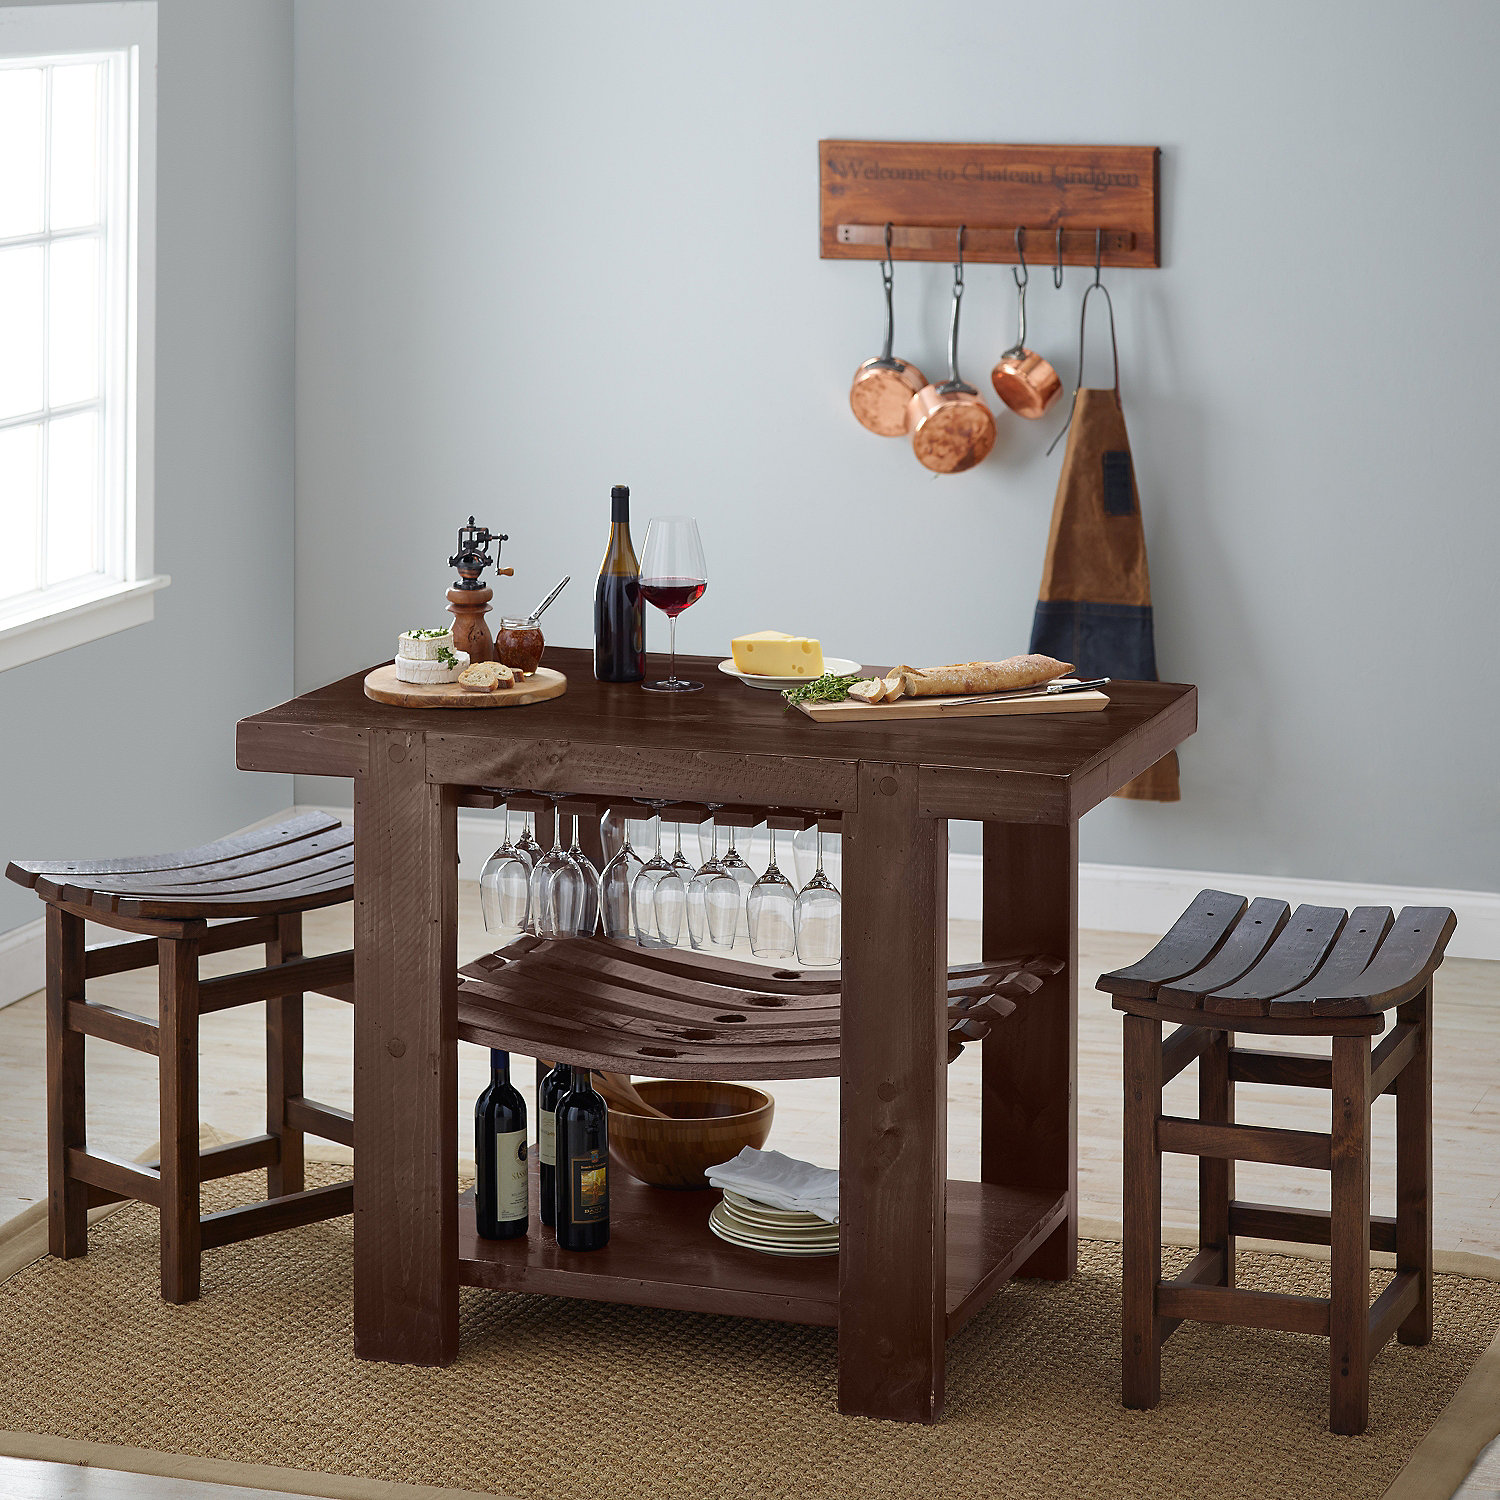 Napa Valley Kitchen Island and Stool Set Caramel Finish Wine